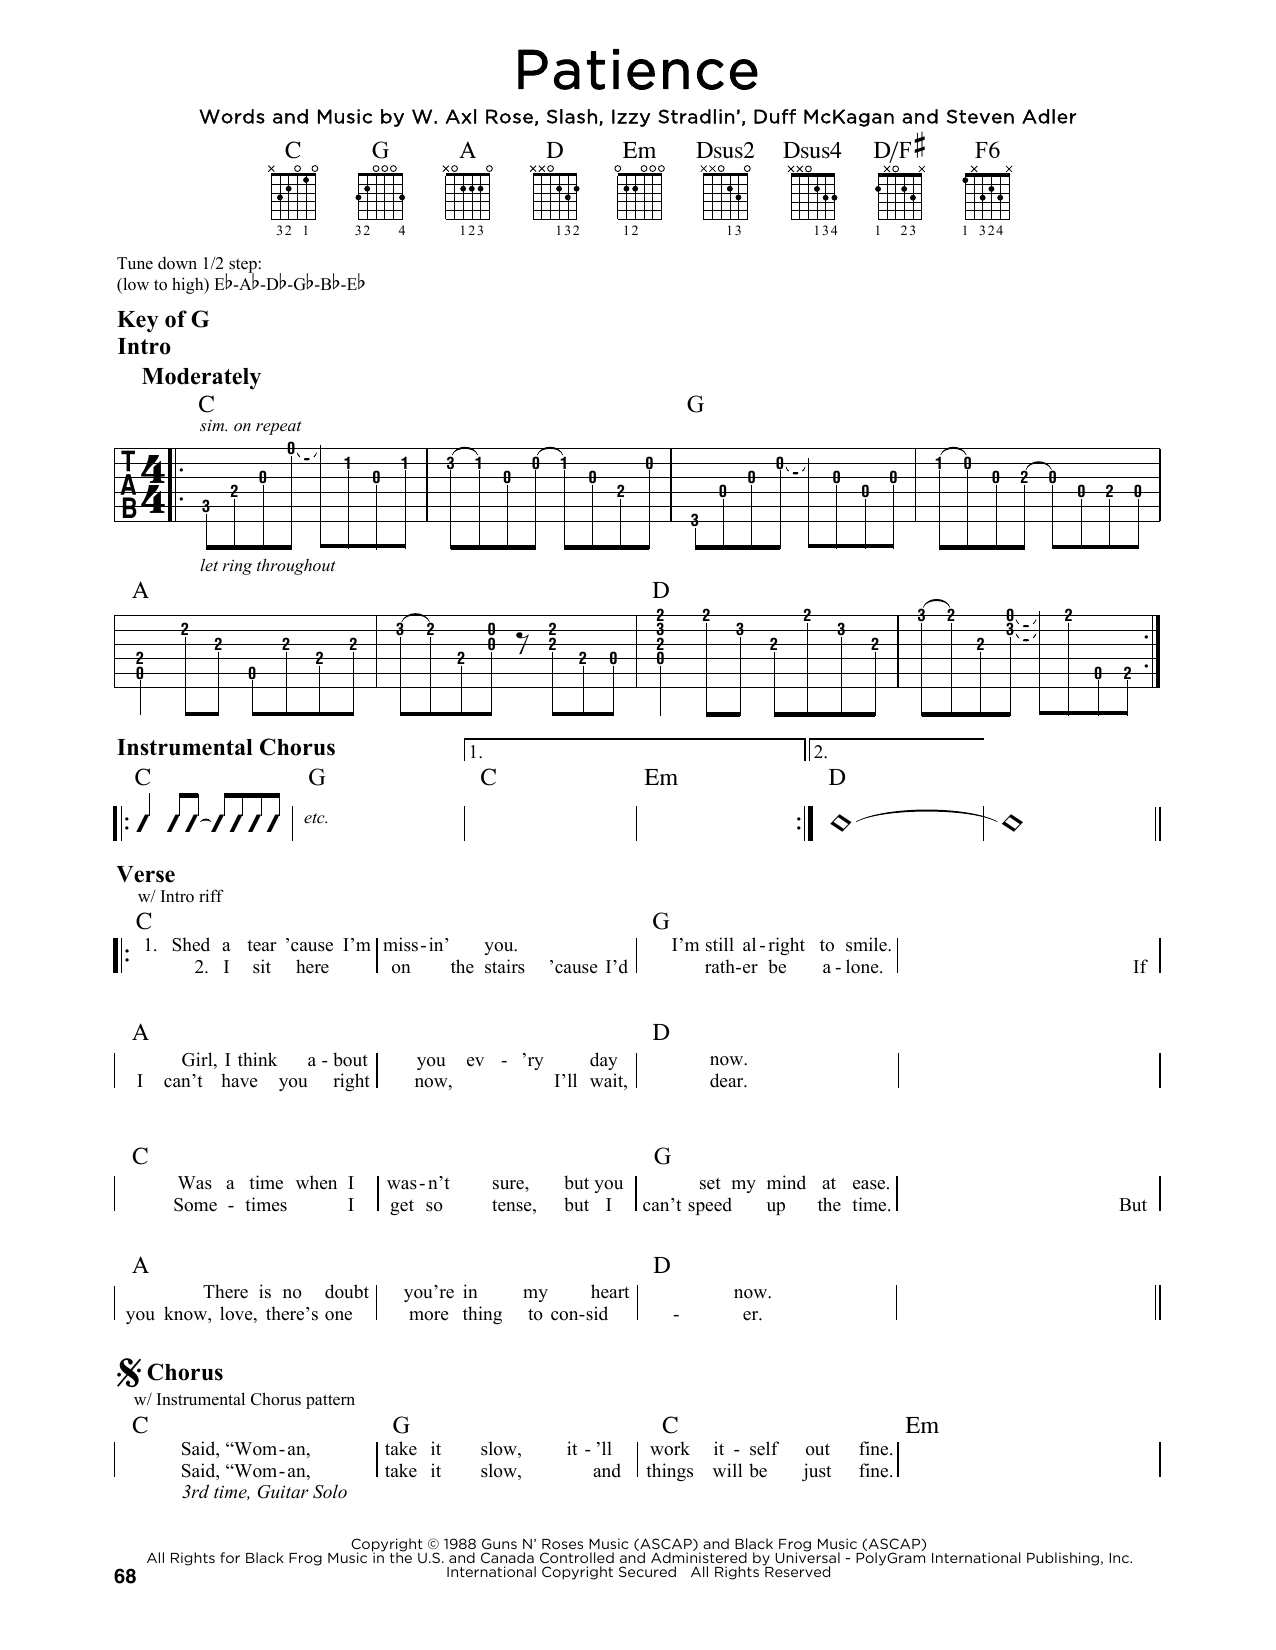 Sheet Music Digital Files To Print Licensed Guns N Roses Digital